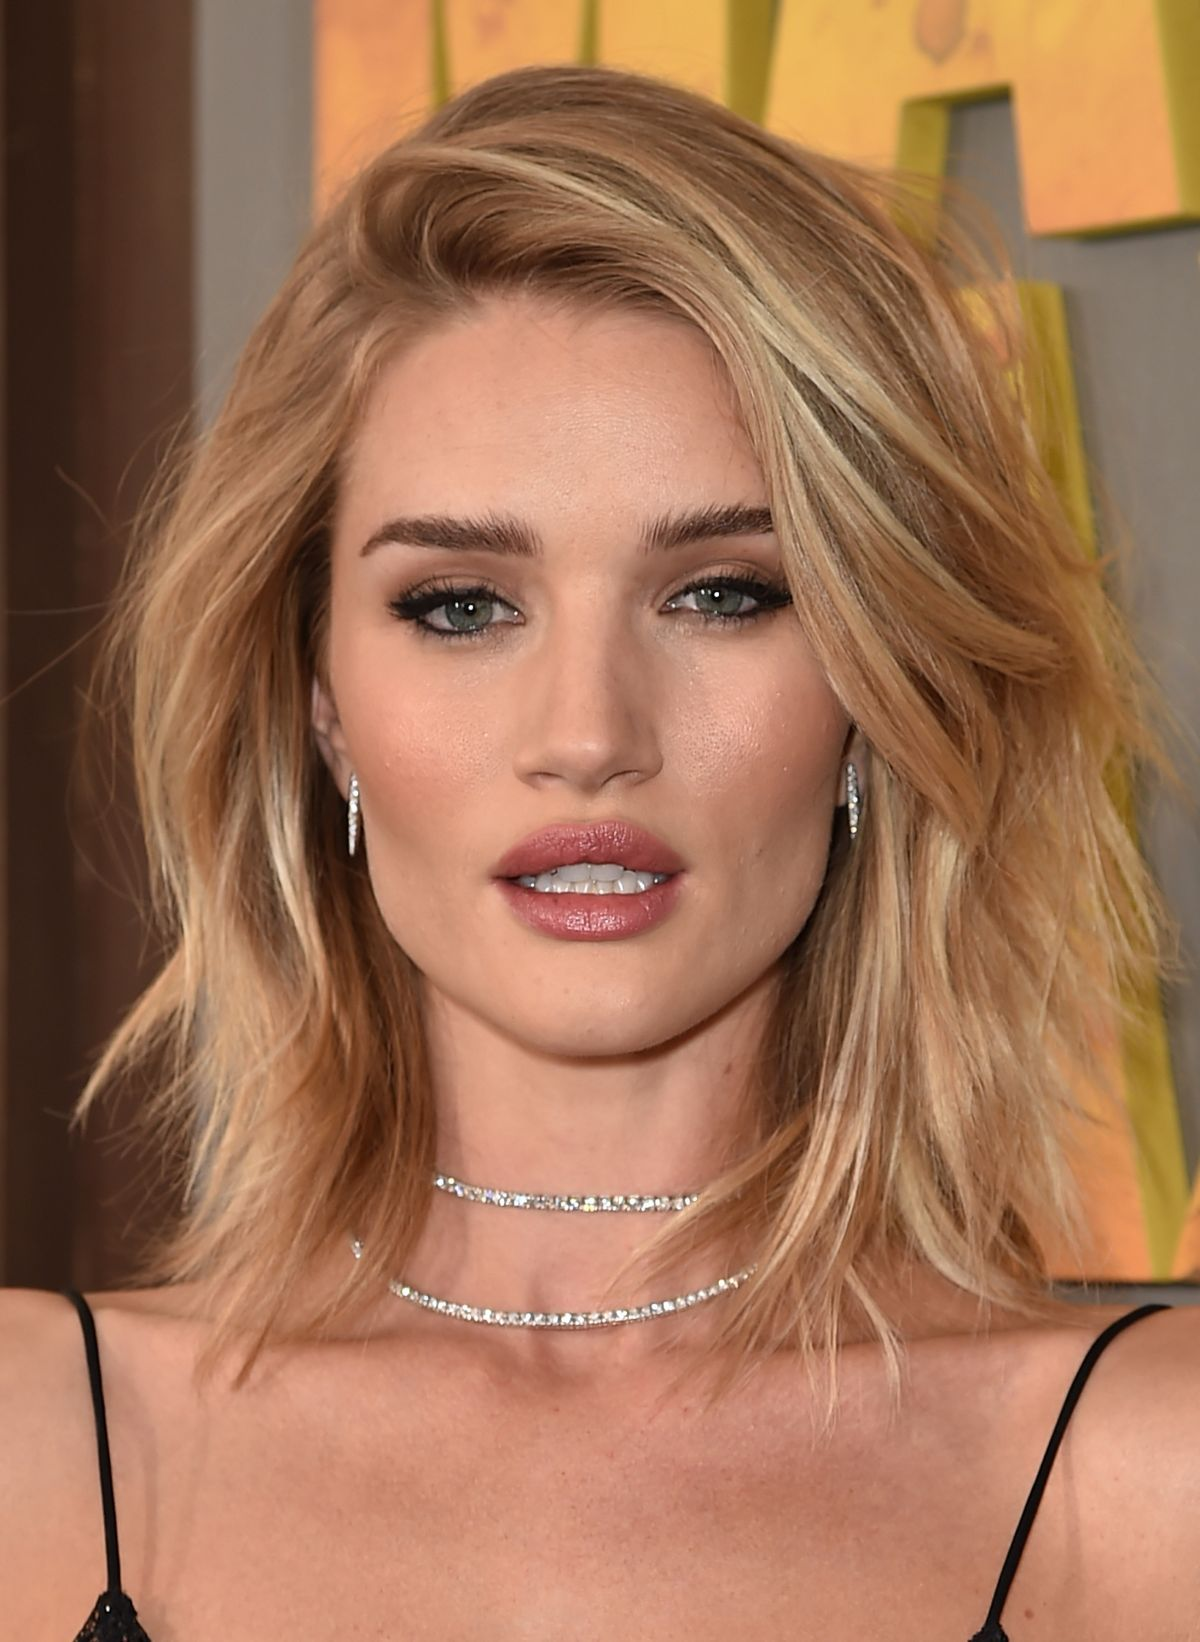 RHW has the perfect cut color and style I WISH my hair looked